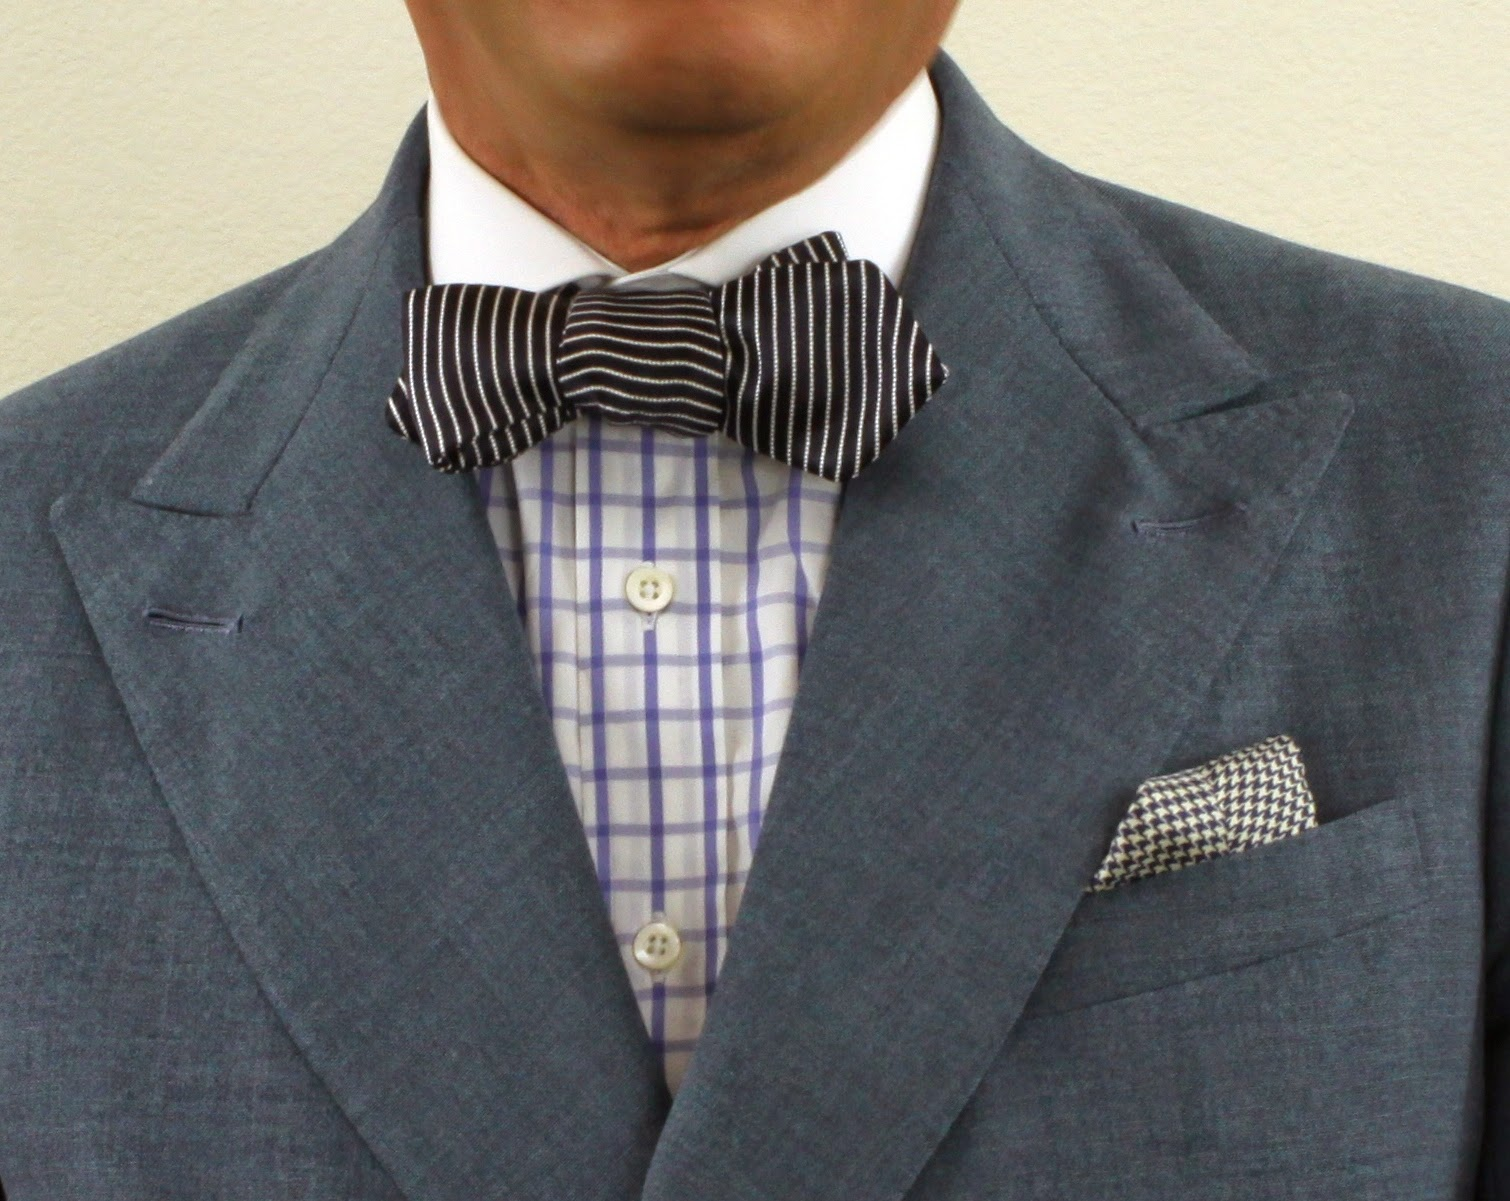 le-noeud-papillon-a-suitable-wardrobe-blog-bow-ties